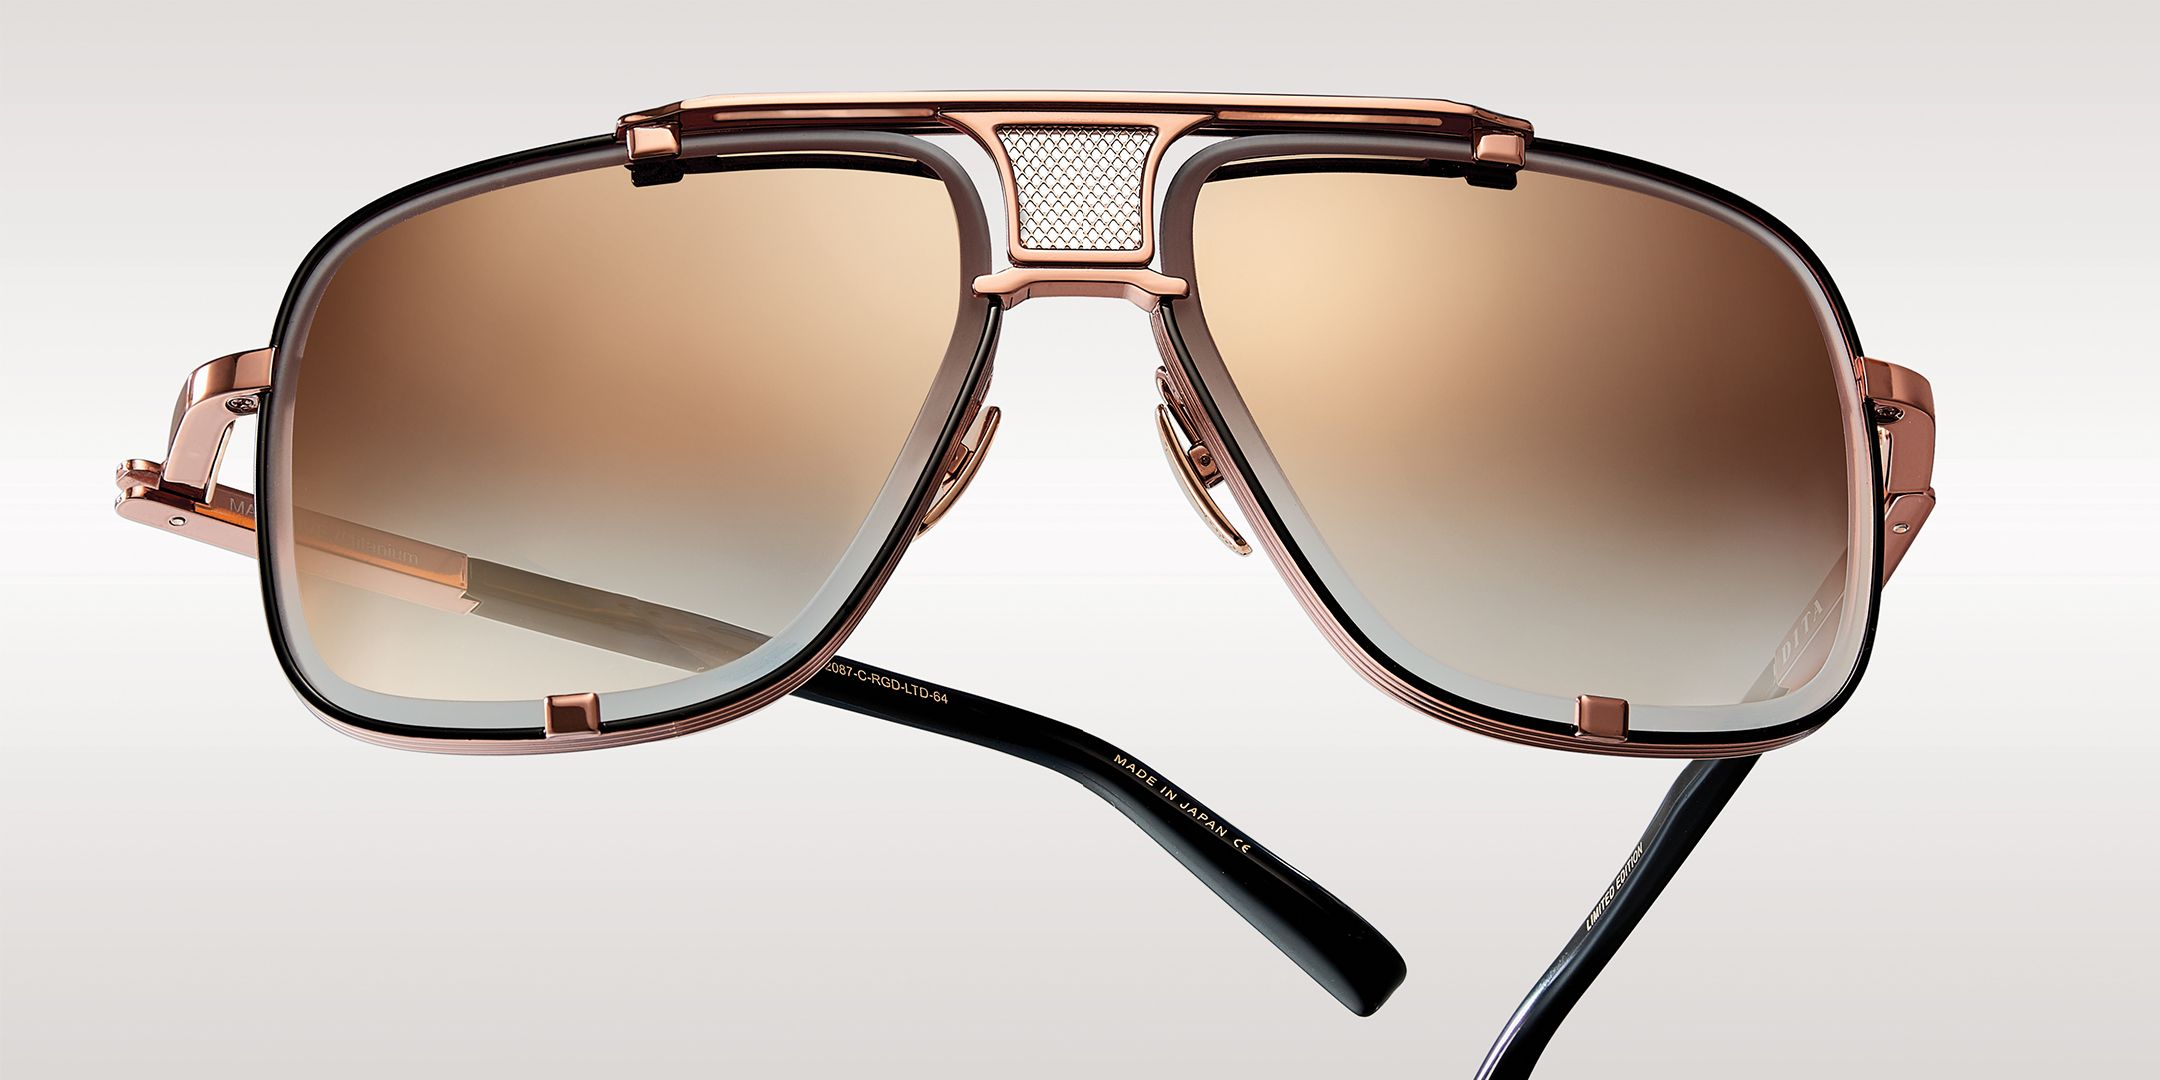 e9ac2be800a The Mach-Five Aviator Sunglasses by DITA Eyewear are a limited edition run  of only 500 pieces.  DITALTD